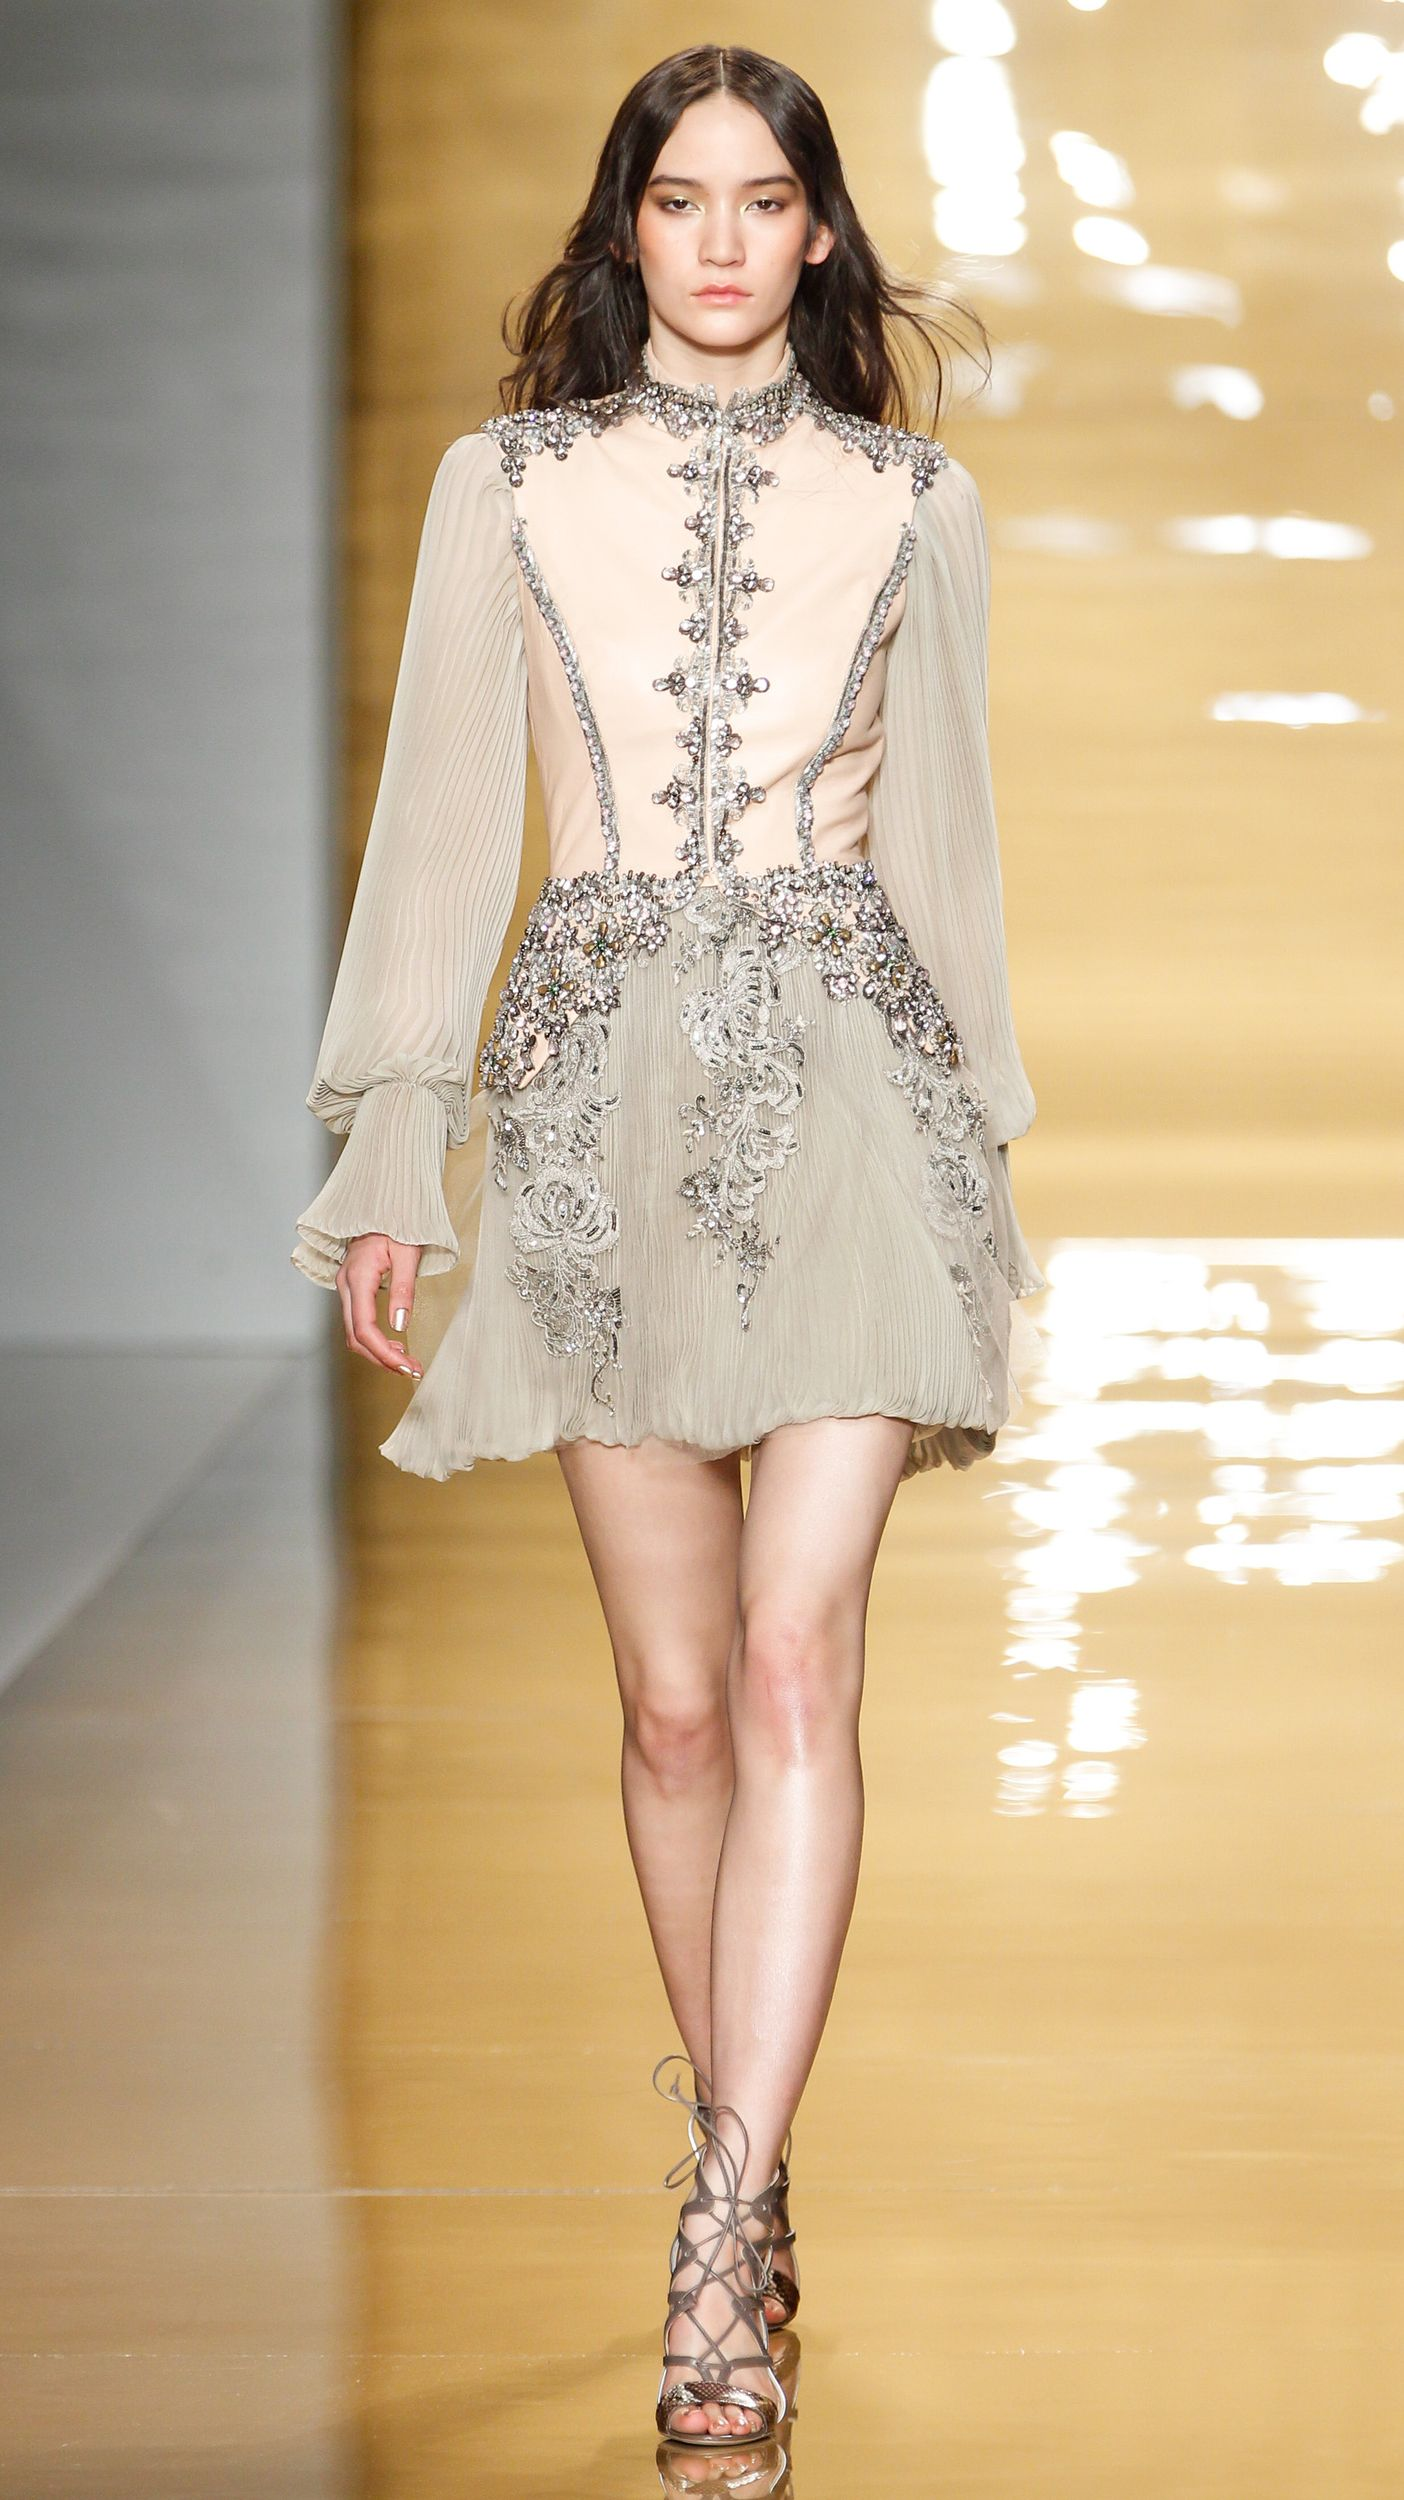 Embellished | Reem Acra Fall/Winter 2015: It won't be Fashion Week without some gorgeously embellished pieces. Reem Acra's intricate detailing was a standout among many. via @stylelist | http://aol.it/18eulUf